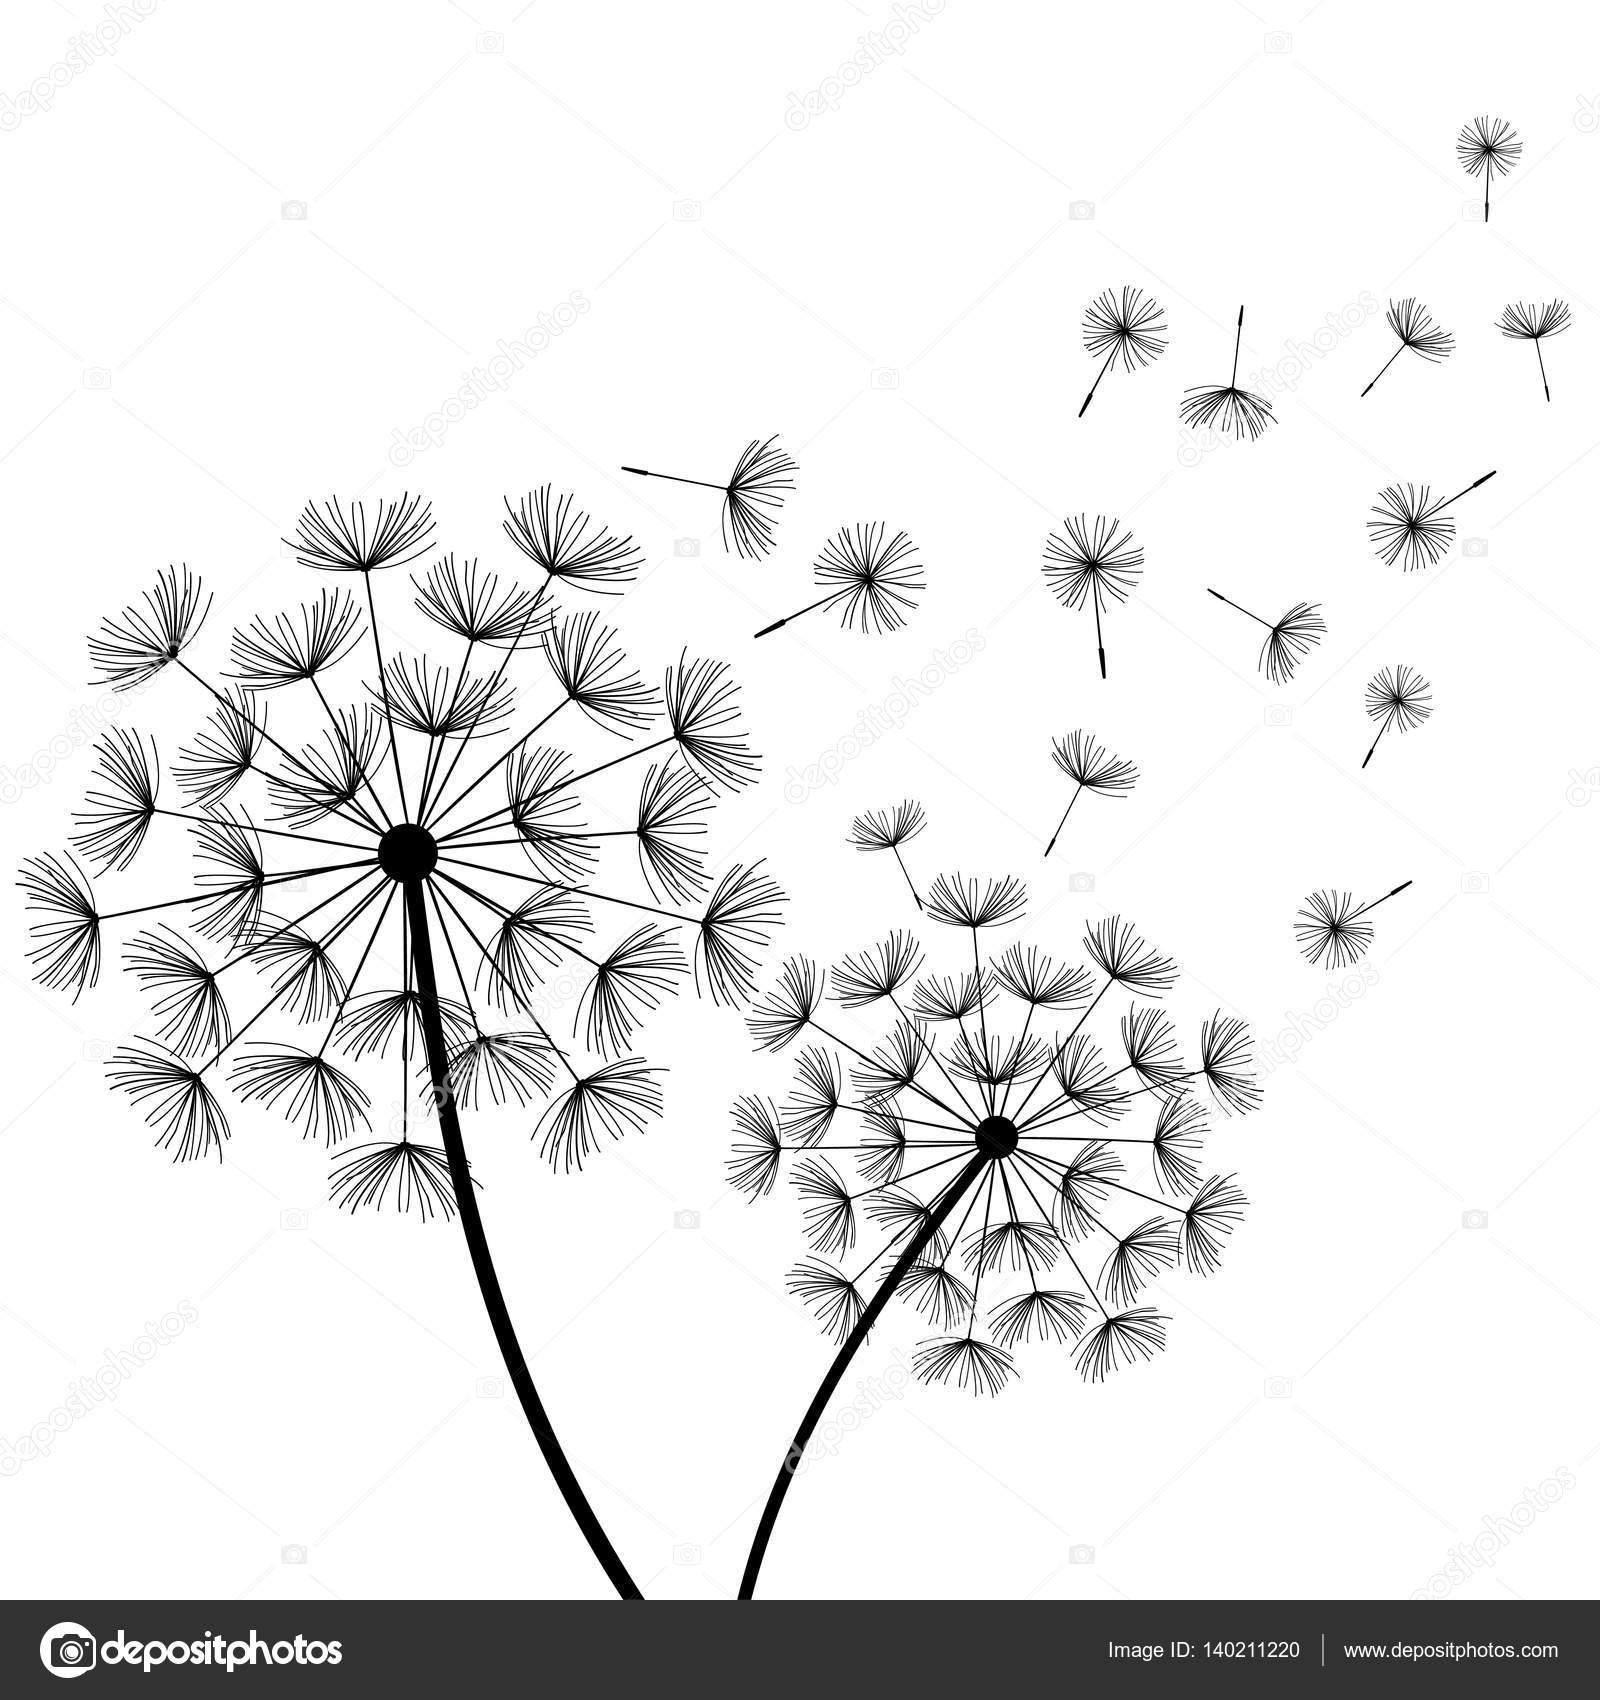 Beautiful Nature White Background With Black Dandelions And Flying Fluff Floral Stylish Trendy Wallpaper Summer Or Spring Flowers Modern Backdrop